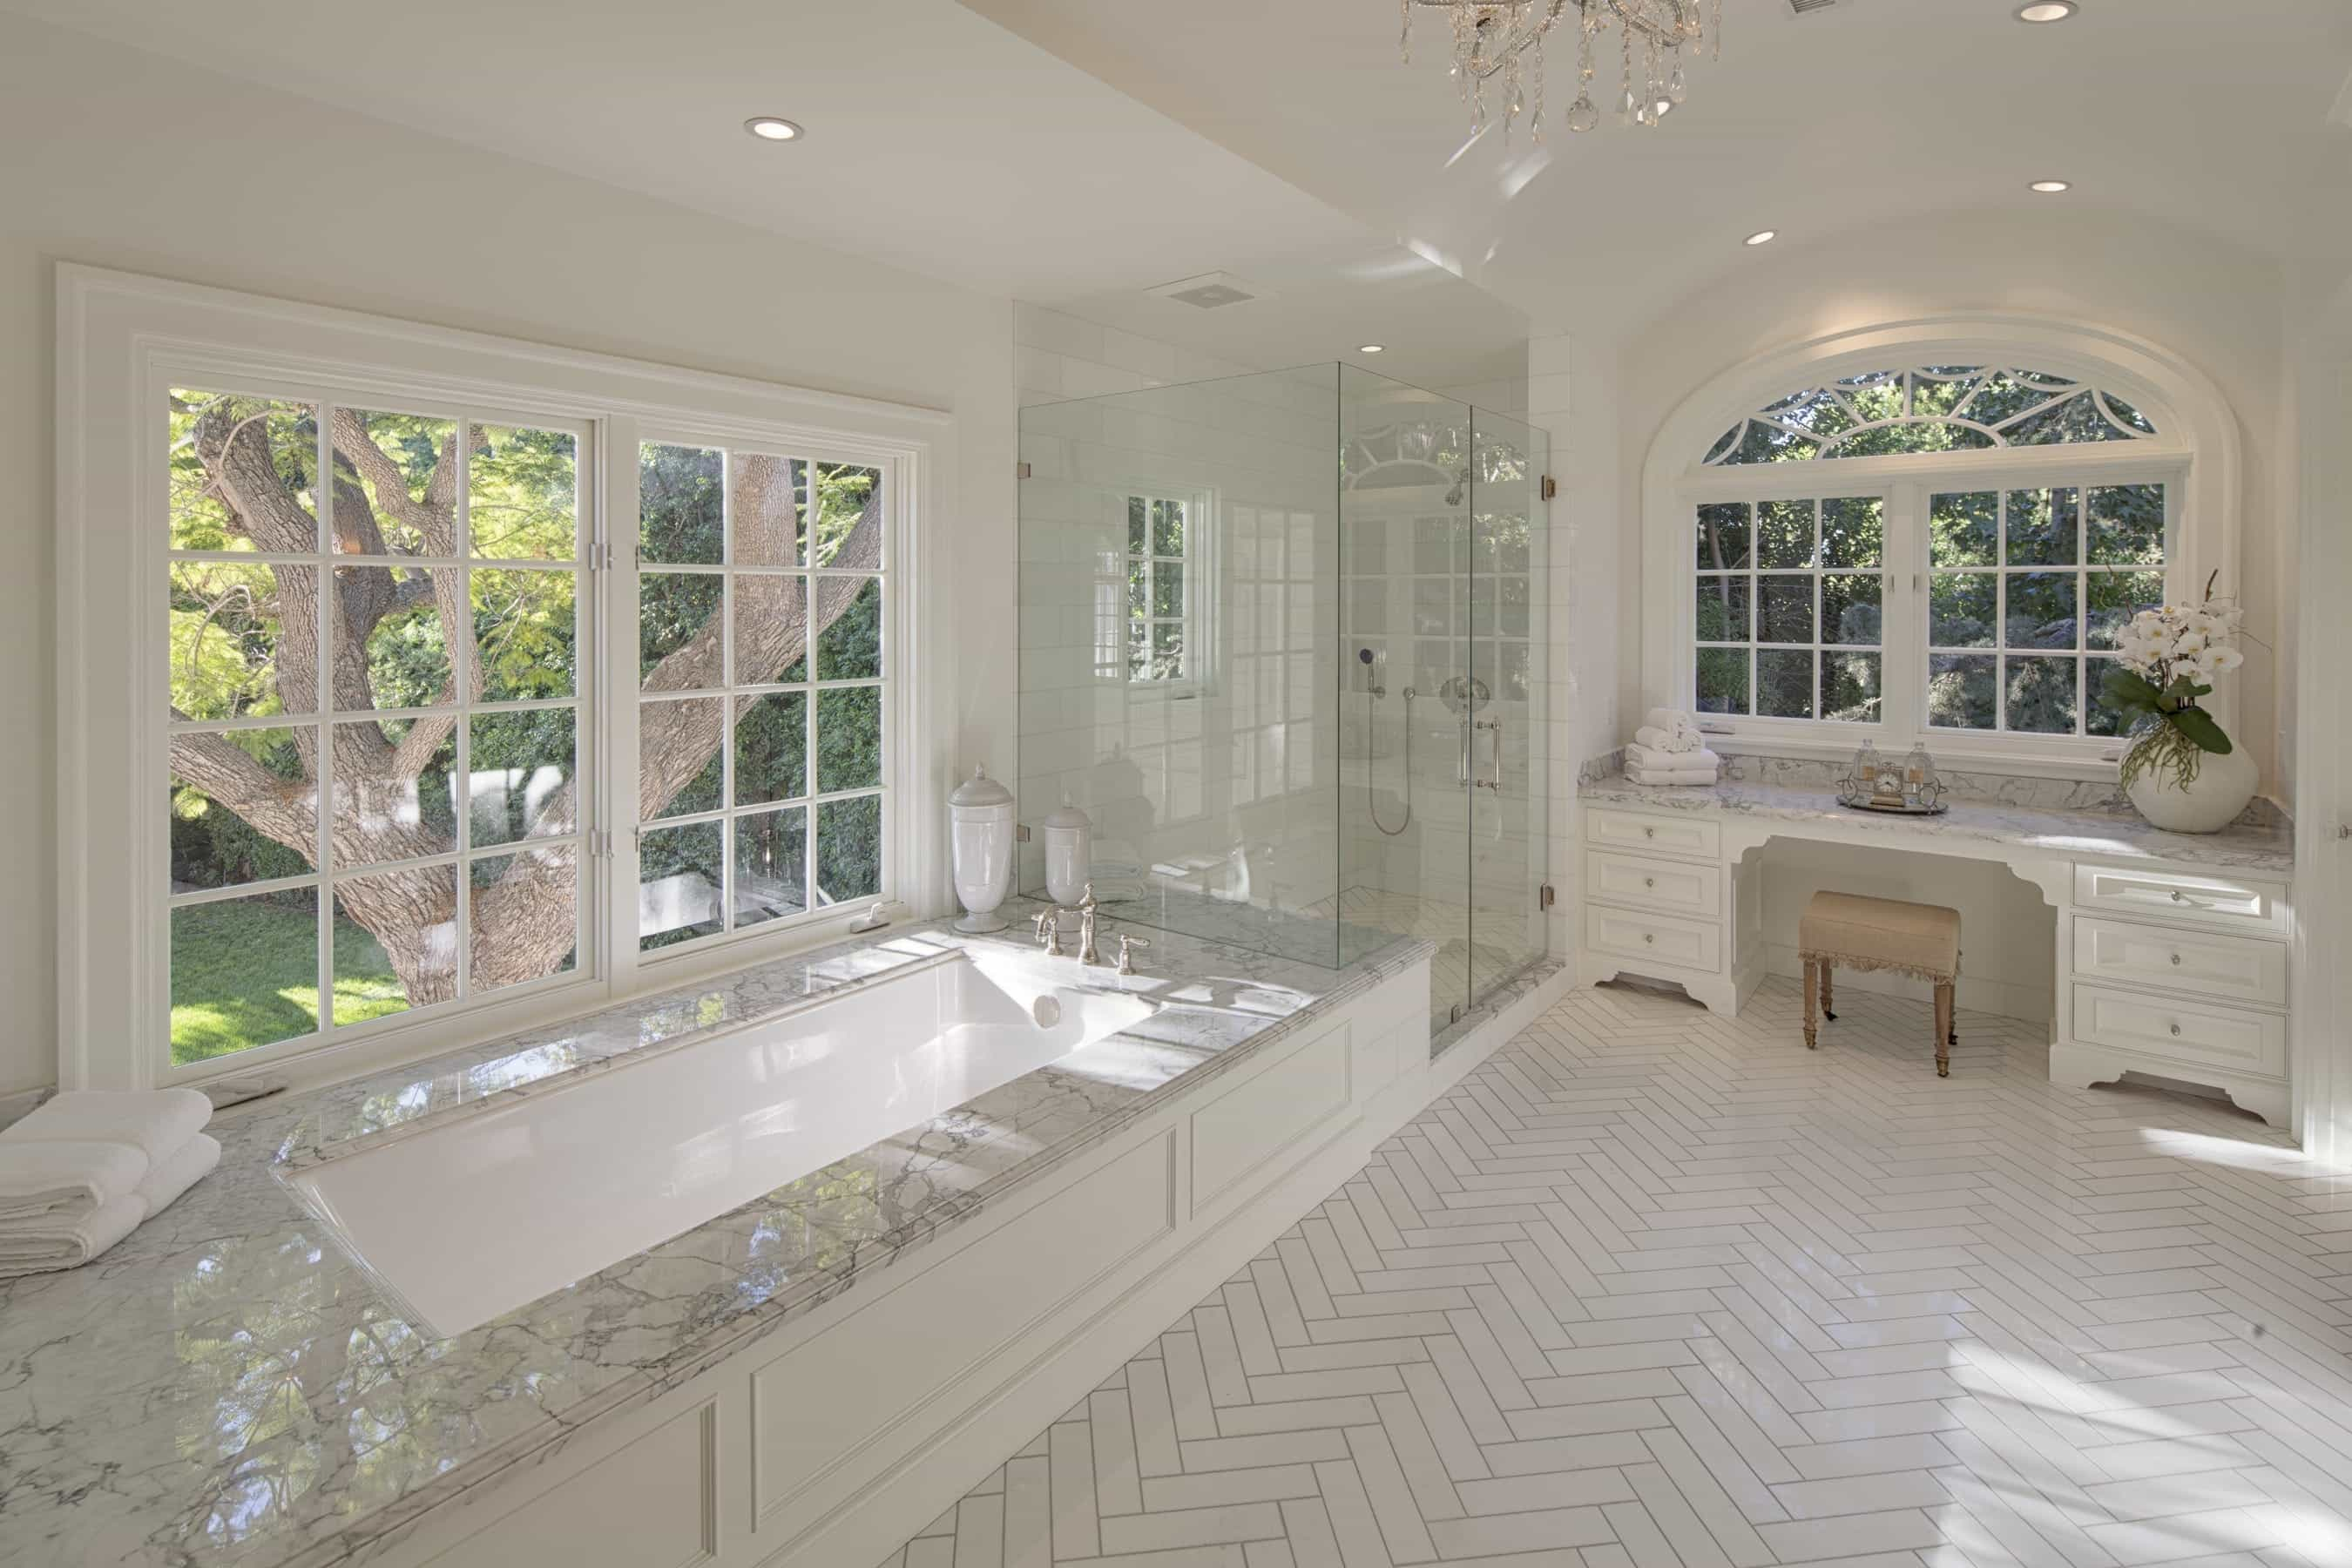 Luxurious, Traditional Bathroom With Herringbone Tile Floor (Image 11 of 20)